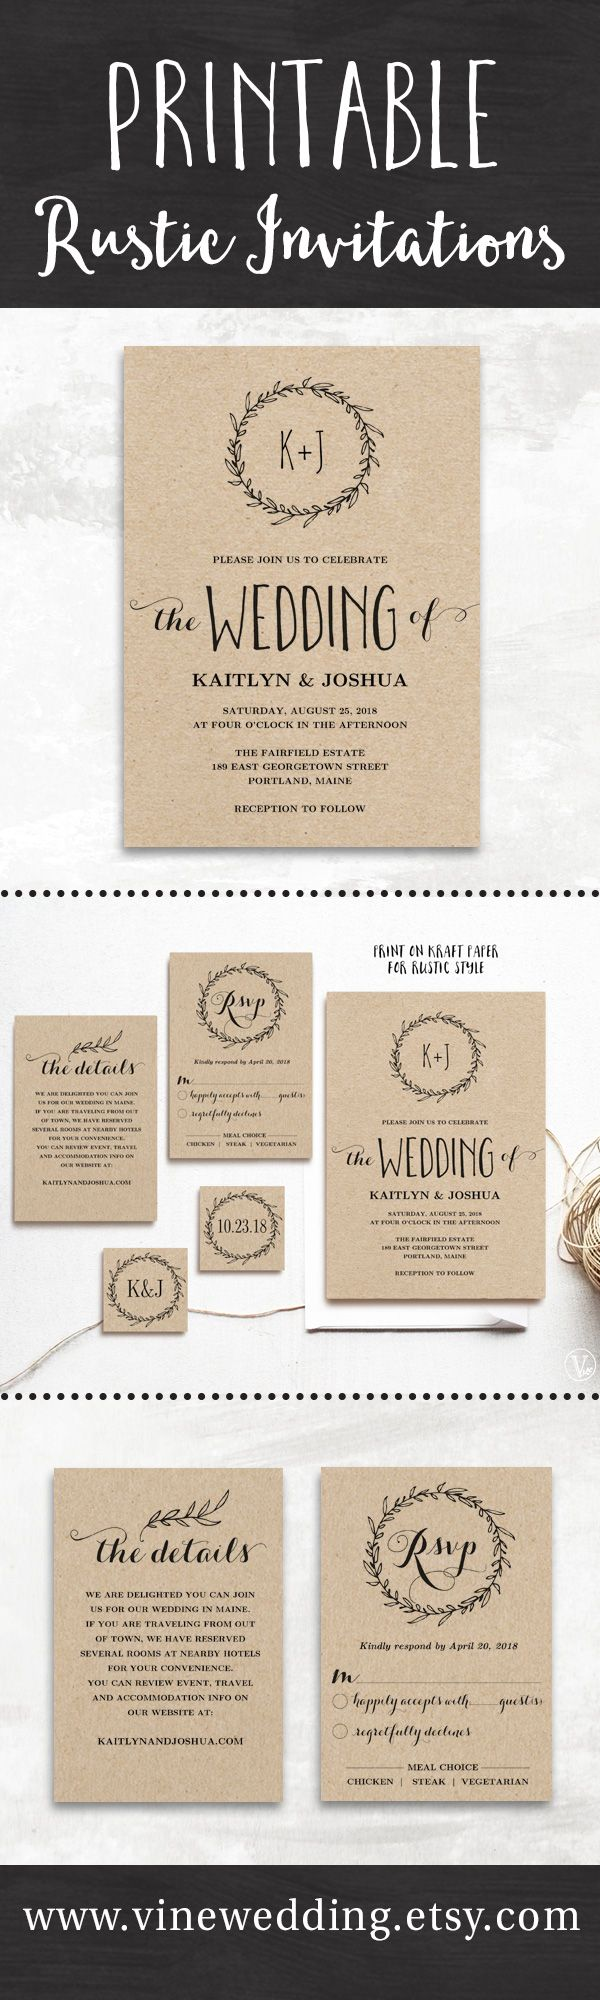 17 Best Invites Order Of Service Images On Pinterest Weddings